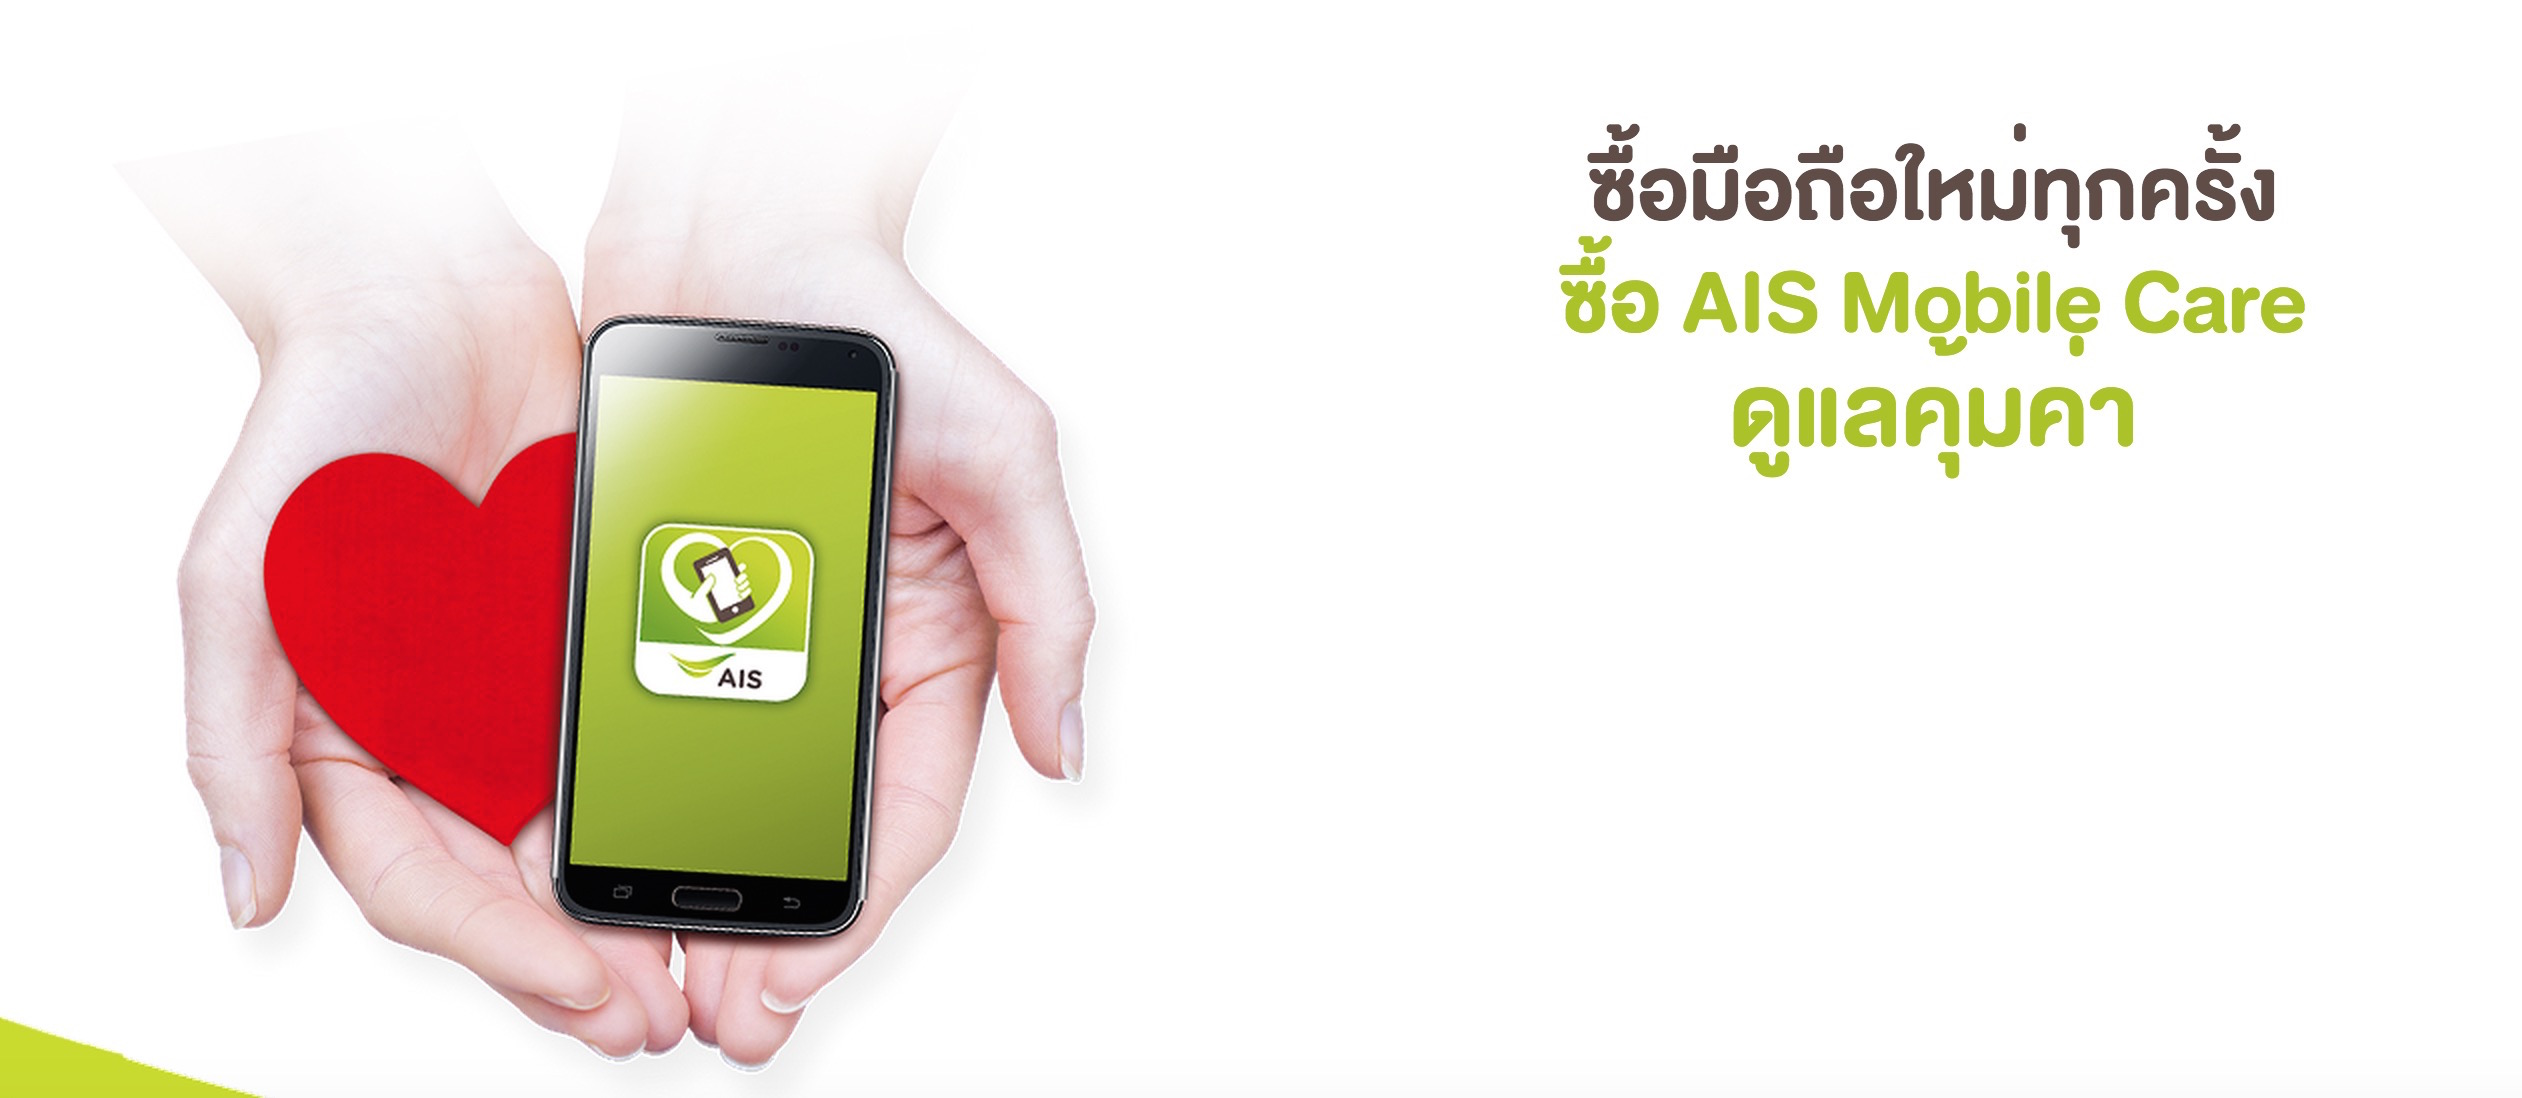 ais mobile care